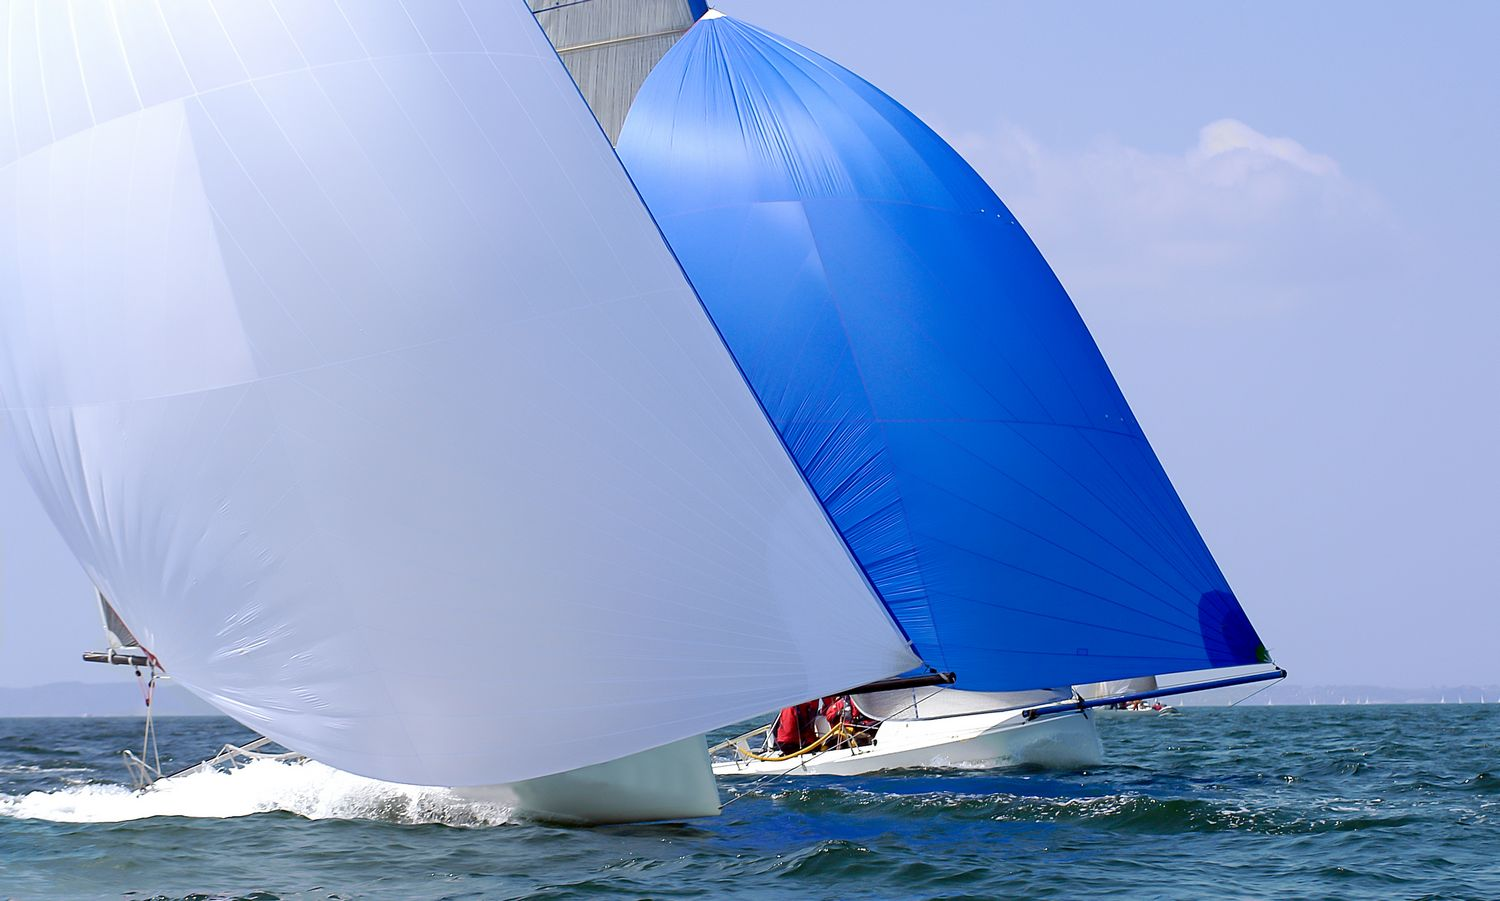 two yacht with spinnaker at regatta